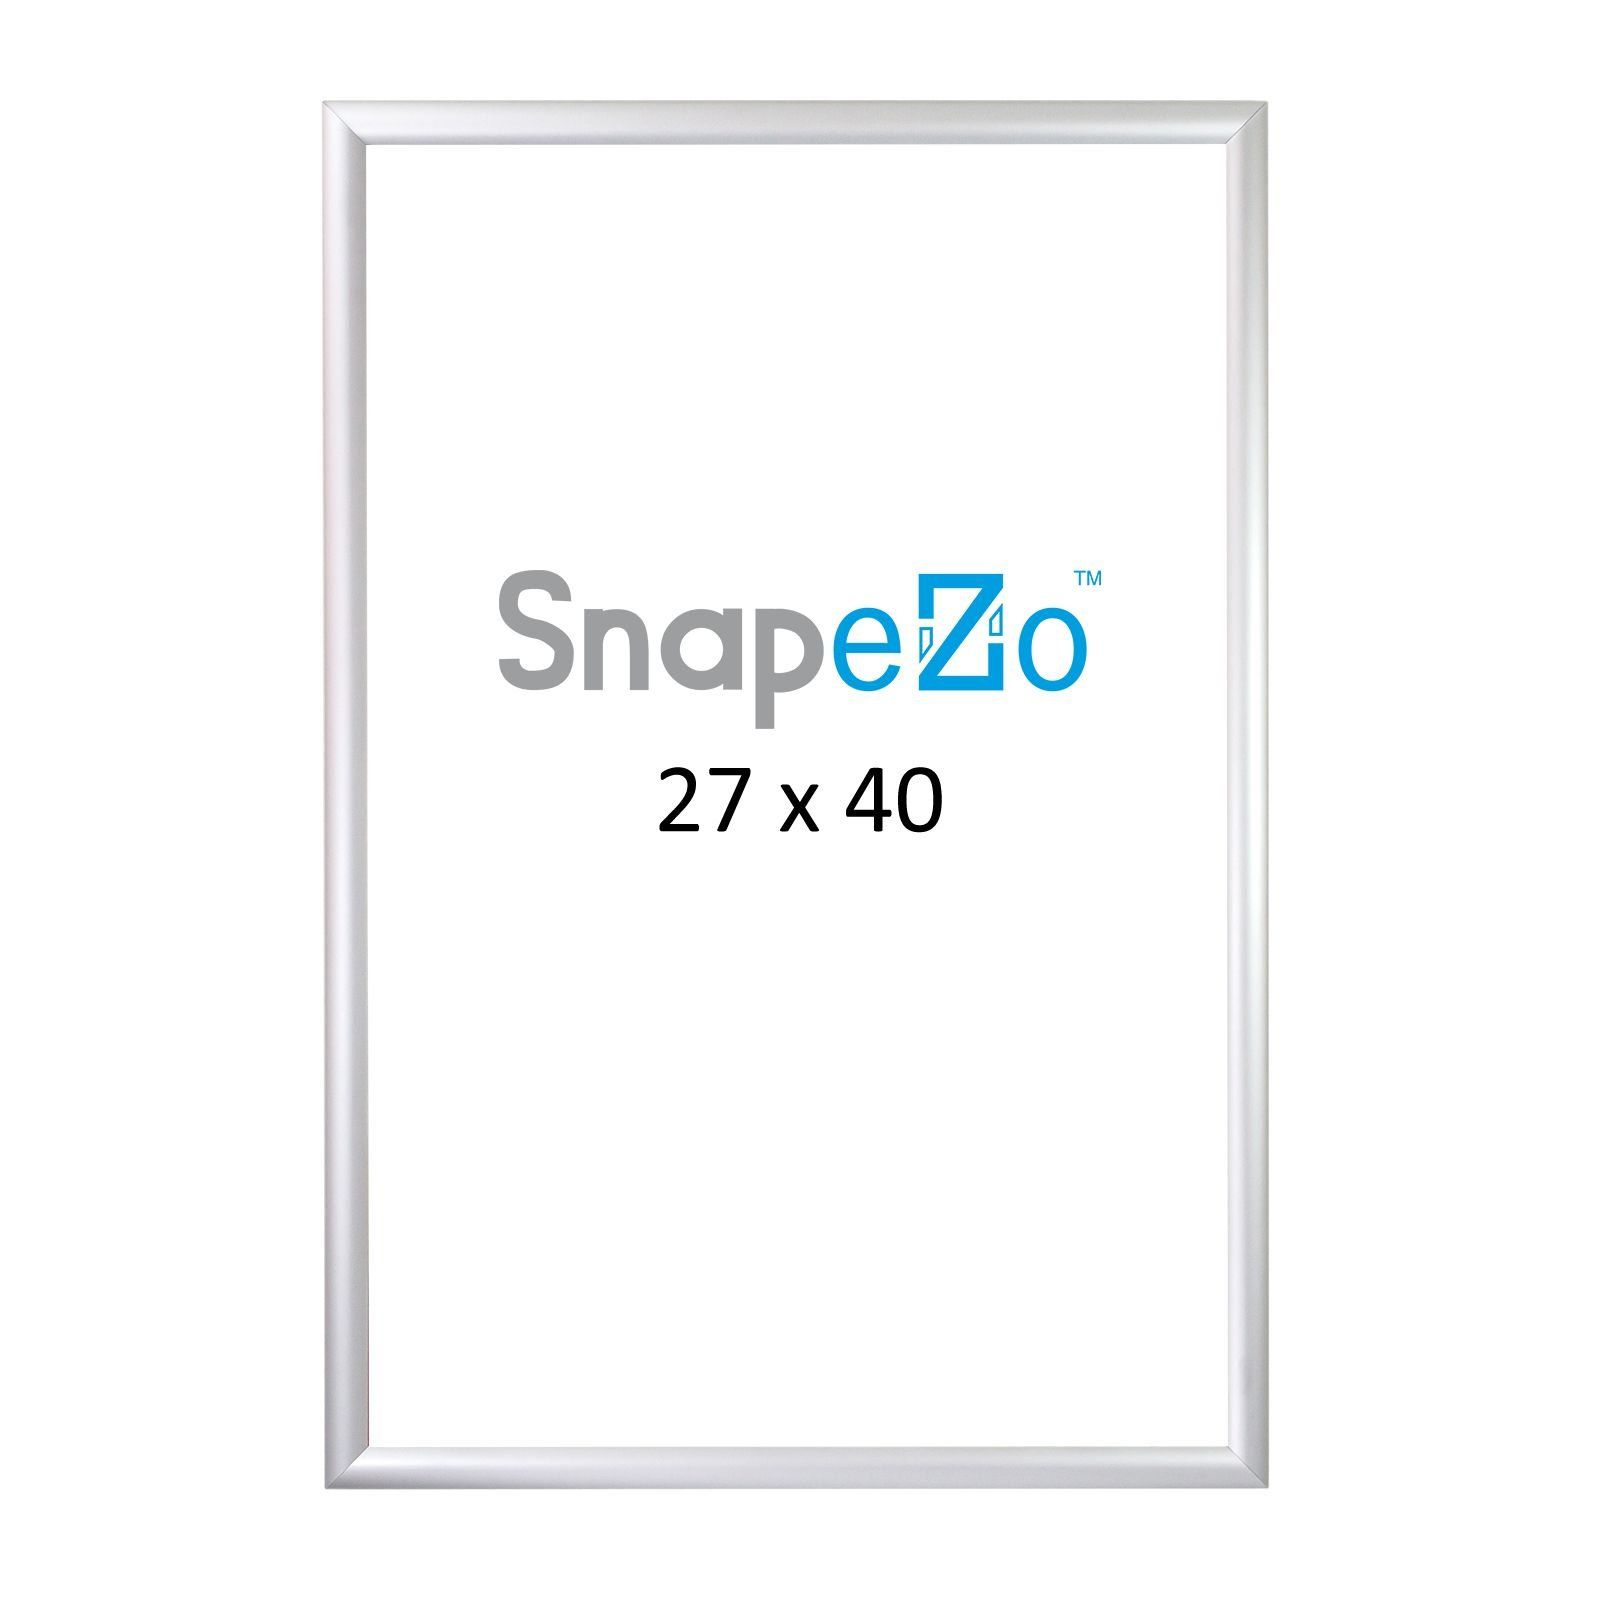 Snapezo Movie Poster Frame 27x40 Inches Silver 1 2 Aluminum Profile Frontloading Snap Frame Wall Mounting Premium Series For Poster Frame Frames On Wall Frame